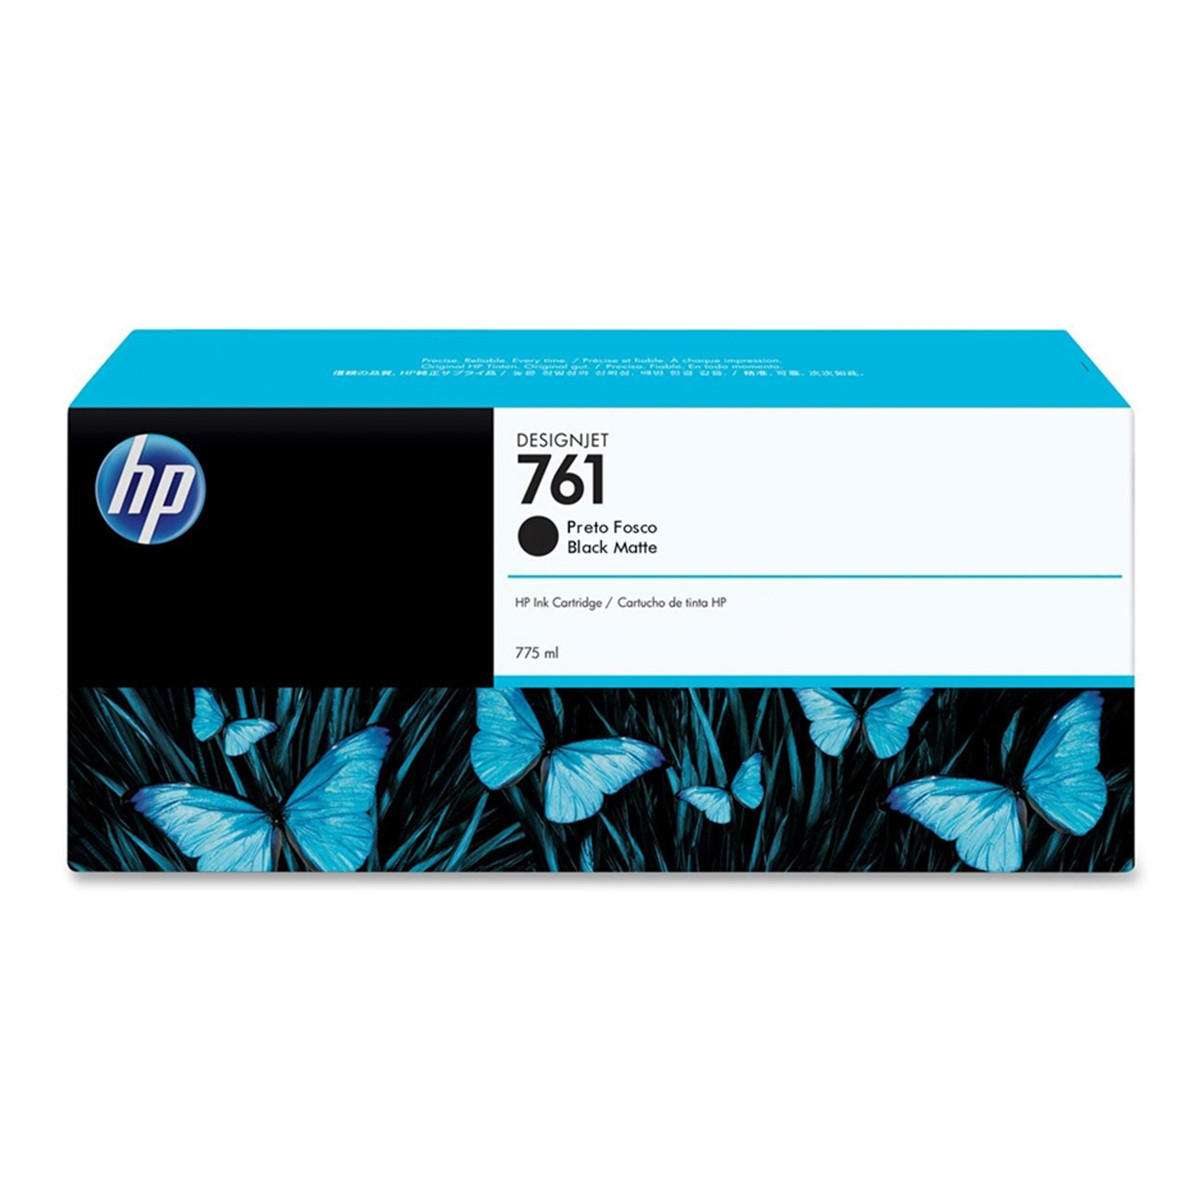 Cartucho de Tinta HP 761 Preto Fosco CM997A | T7100 T7200 | Original 775ml